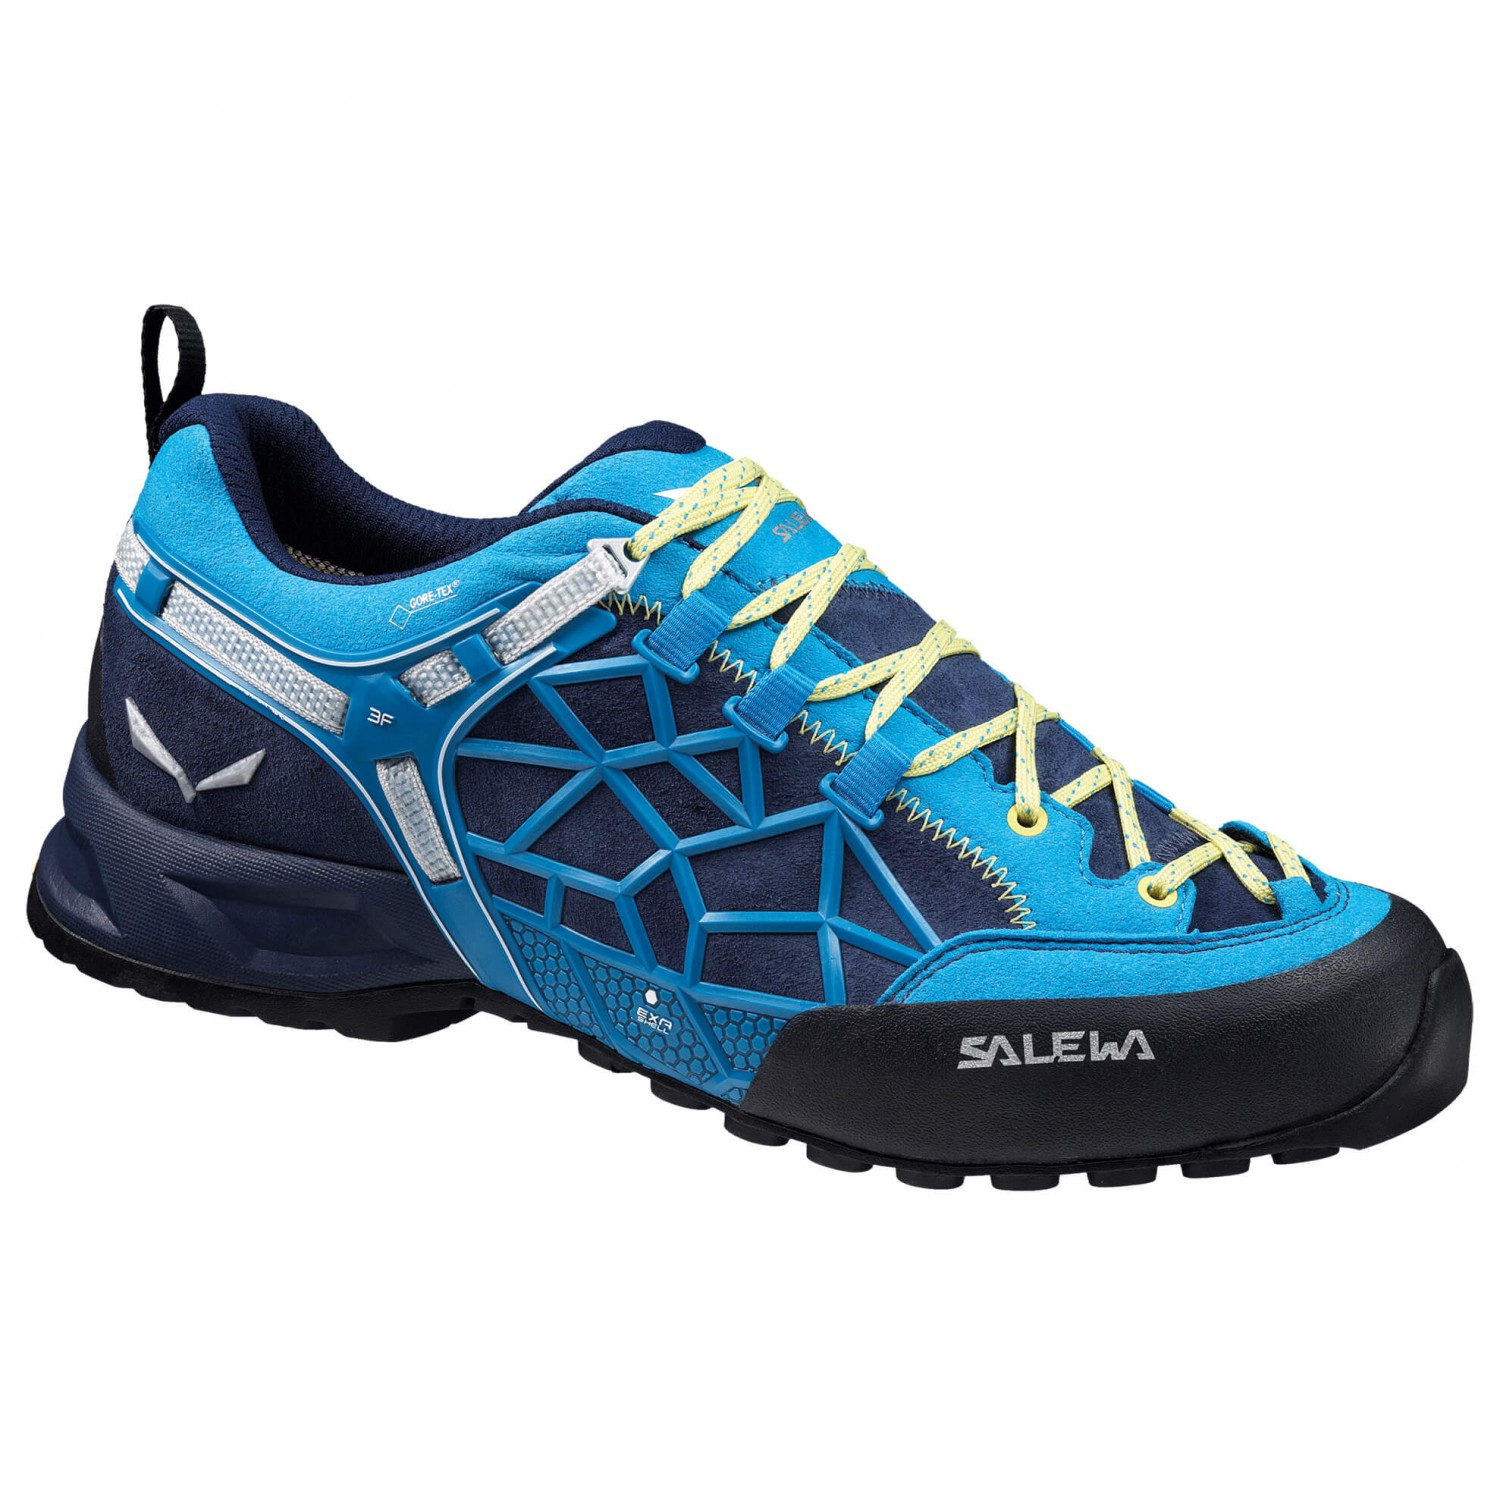 salewa ms wildfire pro gtx chaussures d 39 approche homme. Black Bedroom Furniture Sets. Home Design Ideas